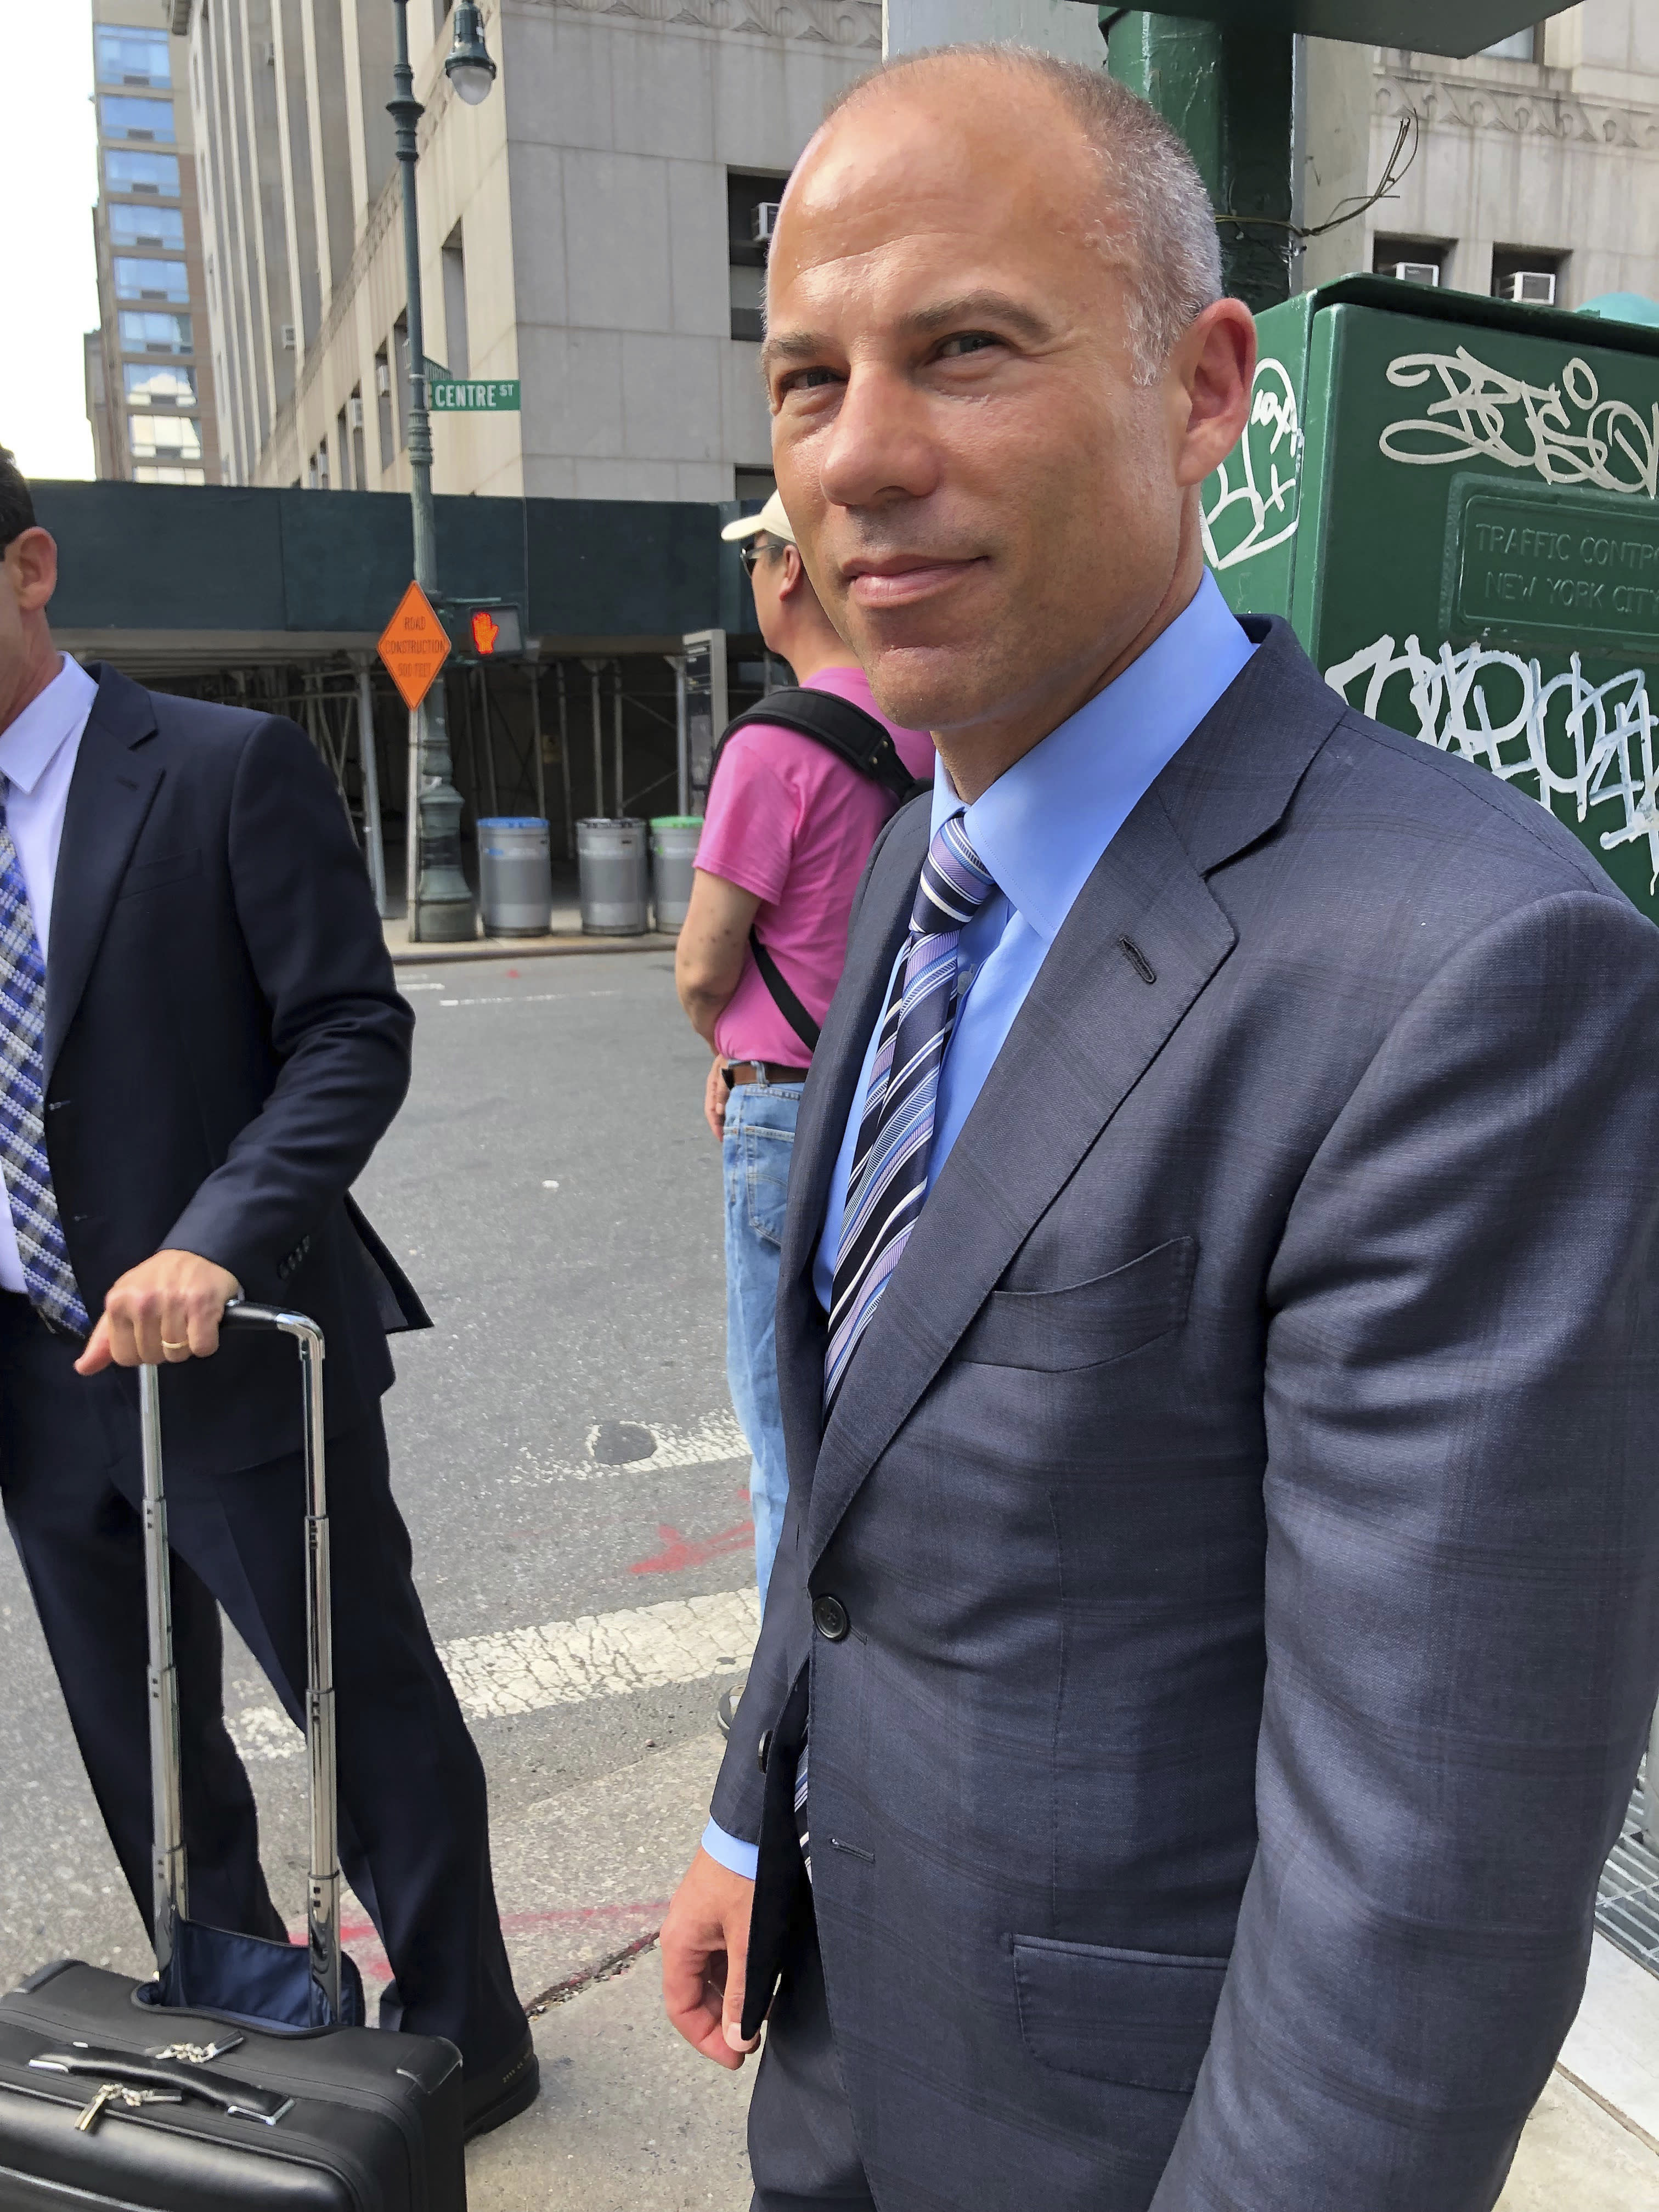 Attorney Michael Avenatti waits for a taxi near the federal courthouse in New York after making an appearance related to the extortion charges against him, Thursday, Aug. 22, 2019. (AP Photo/Larry Neumeister)